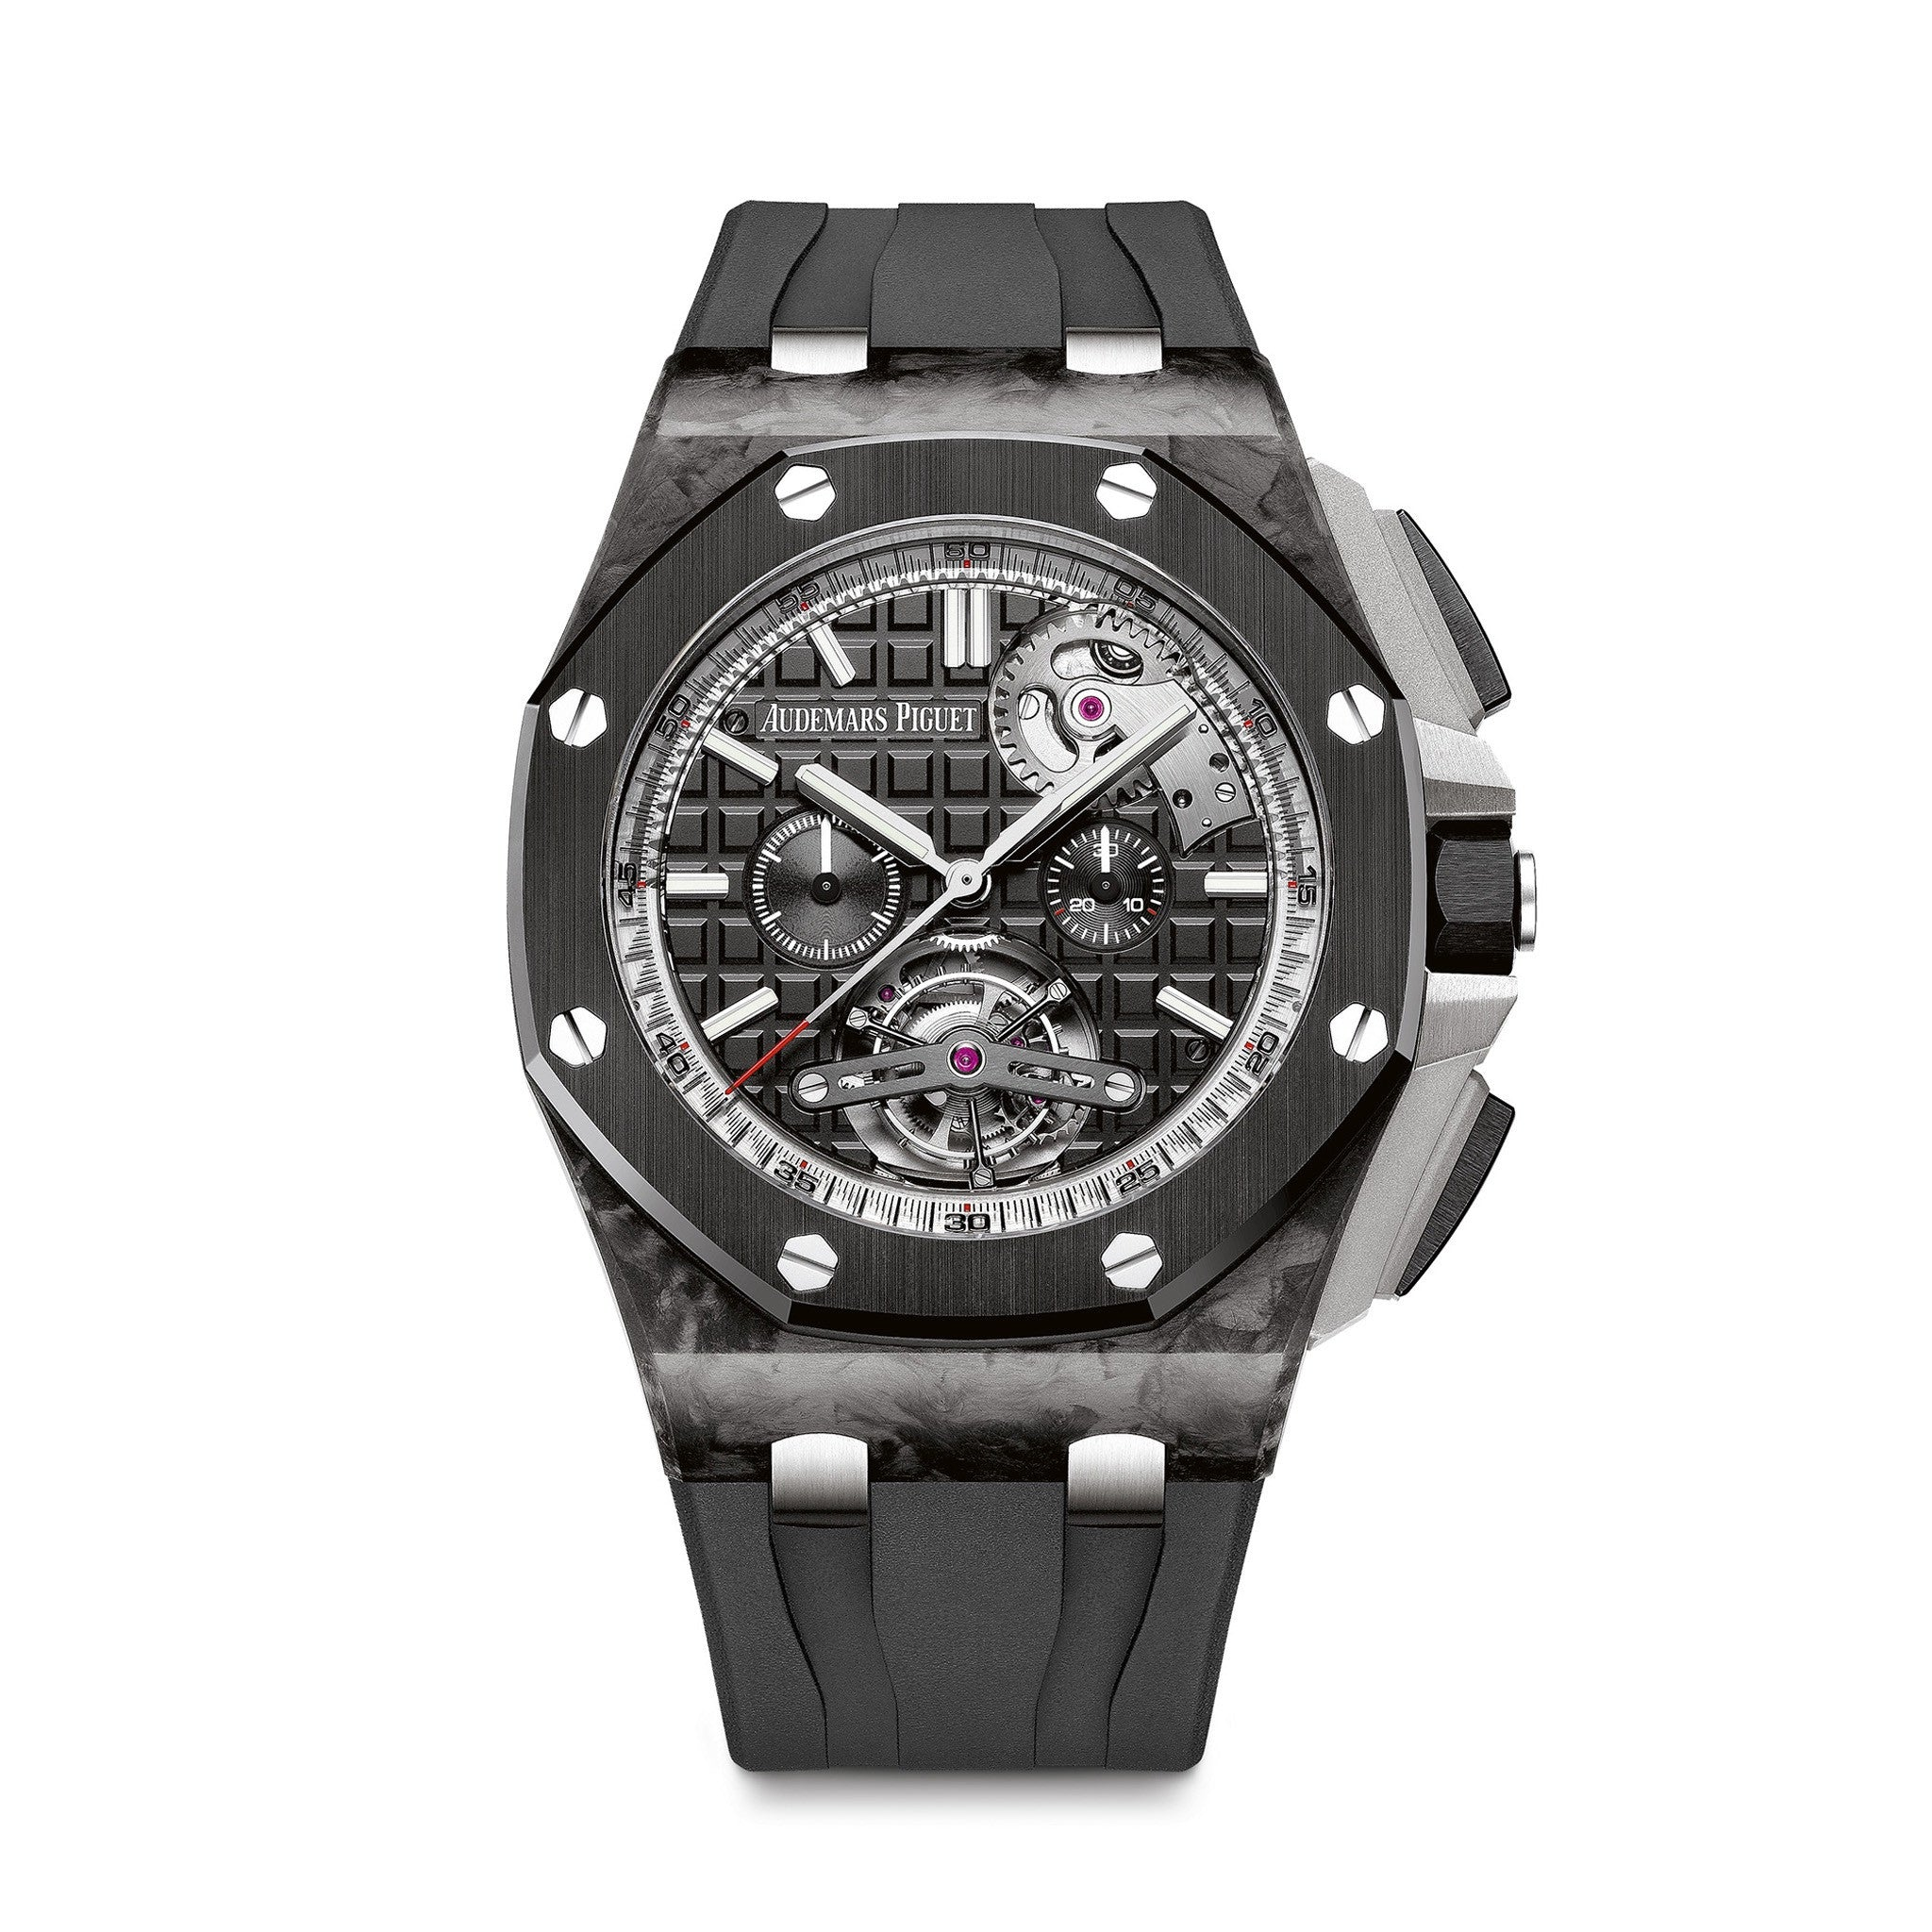 Royal Oak Offshore Chronograph Tourbillon Selfwinding 26550AU.OO.A002CA.01 - Audemars Piguet